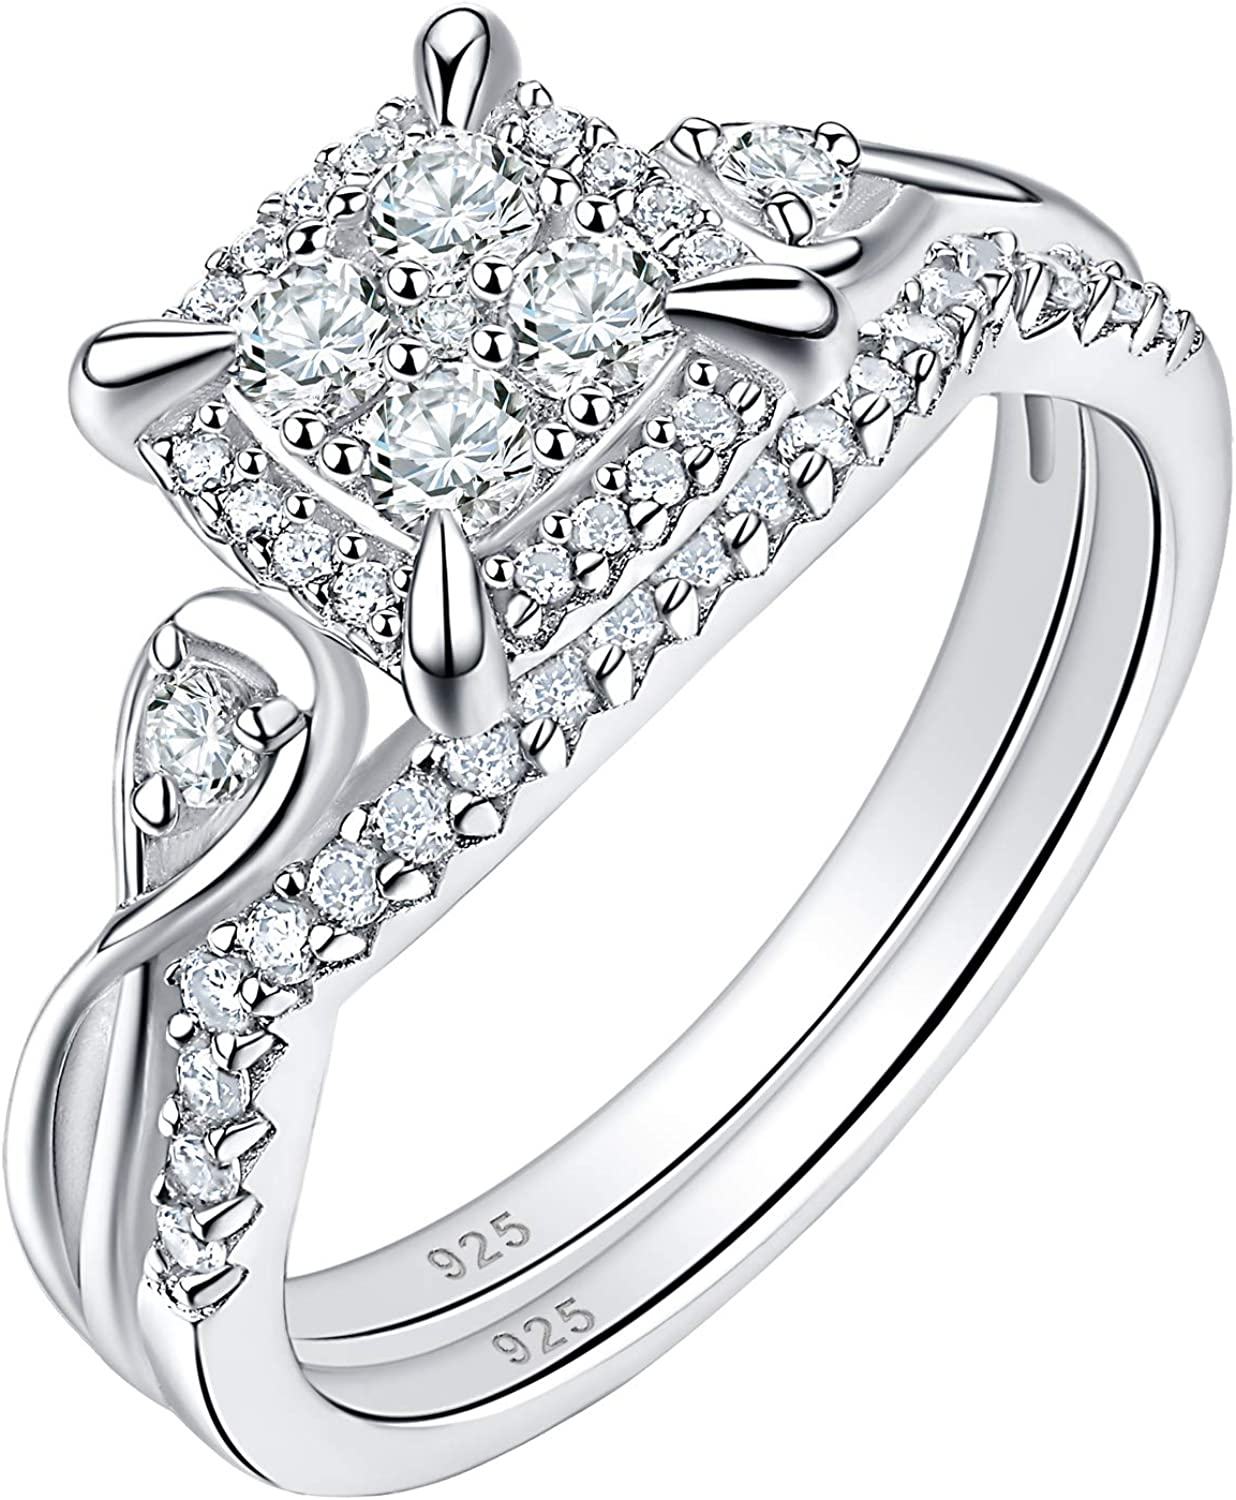 SHELOVES Infinity Sterling Silver Wedding Rings Set Round Cut Princess Cluster Cz for Women Sz 5-10